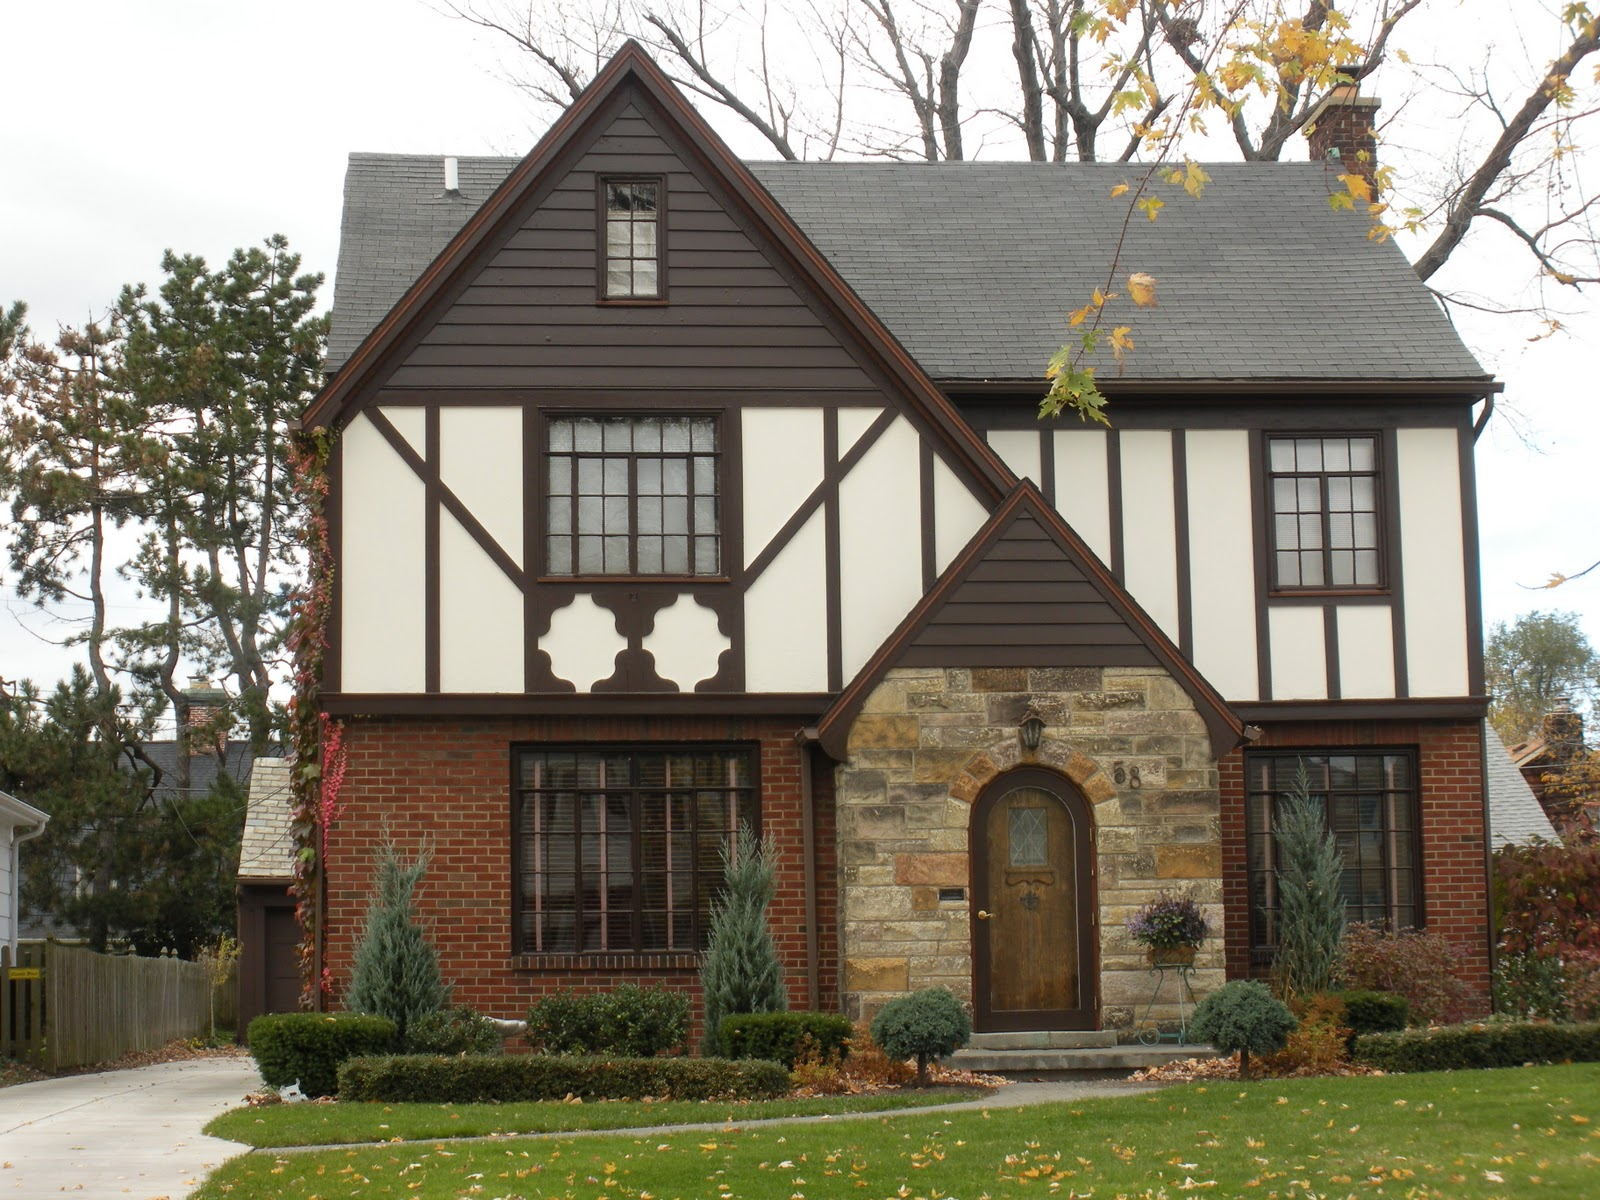 Reinventing the past housing styles of tudor ville and for Different types of doors for houses